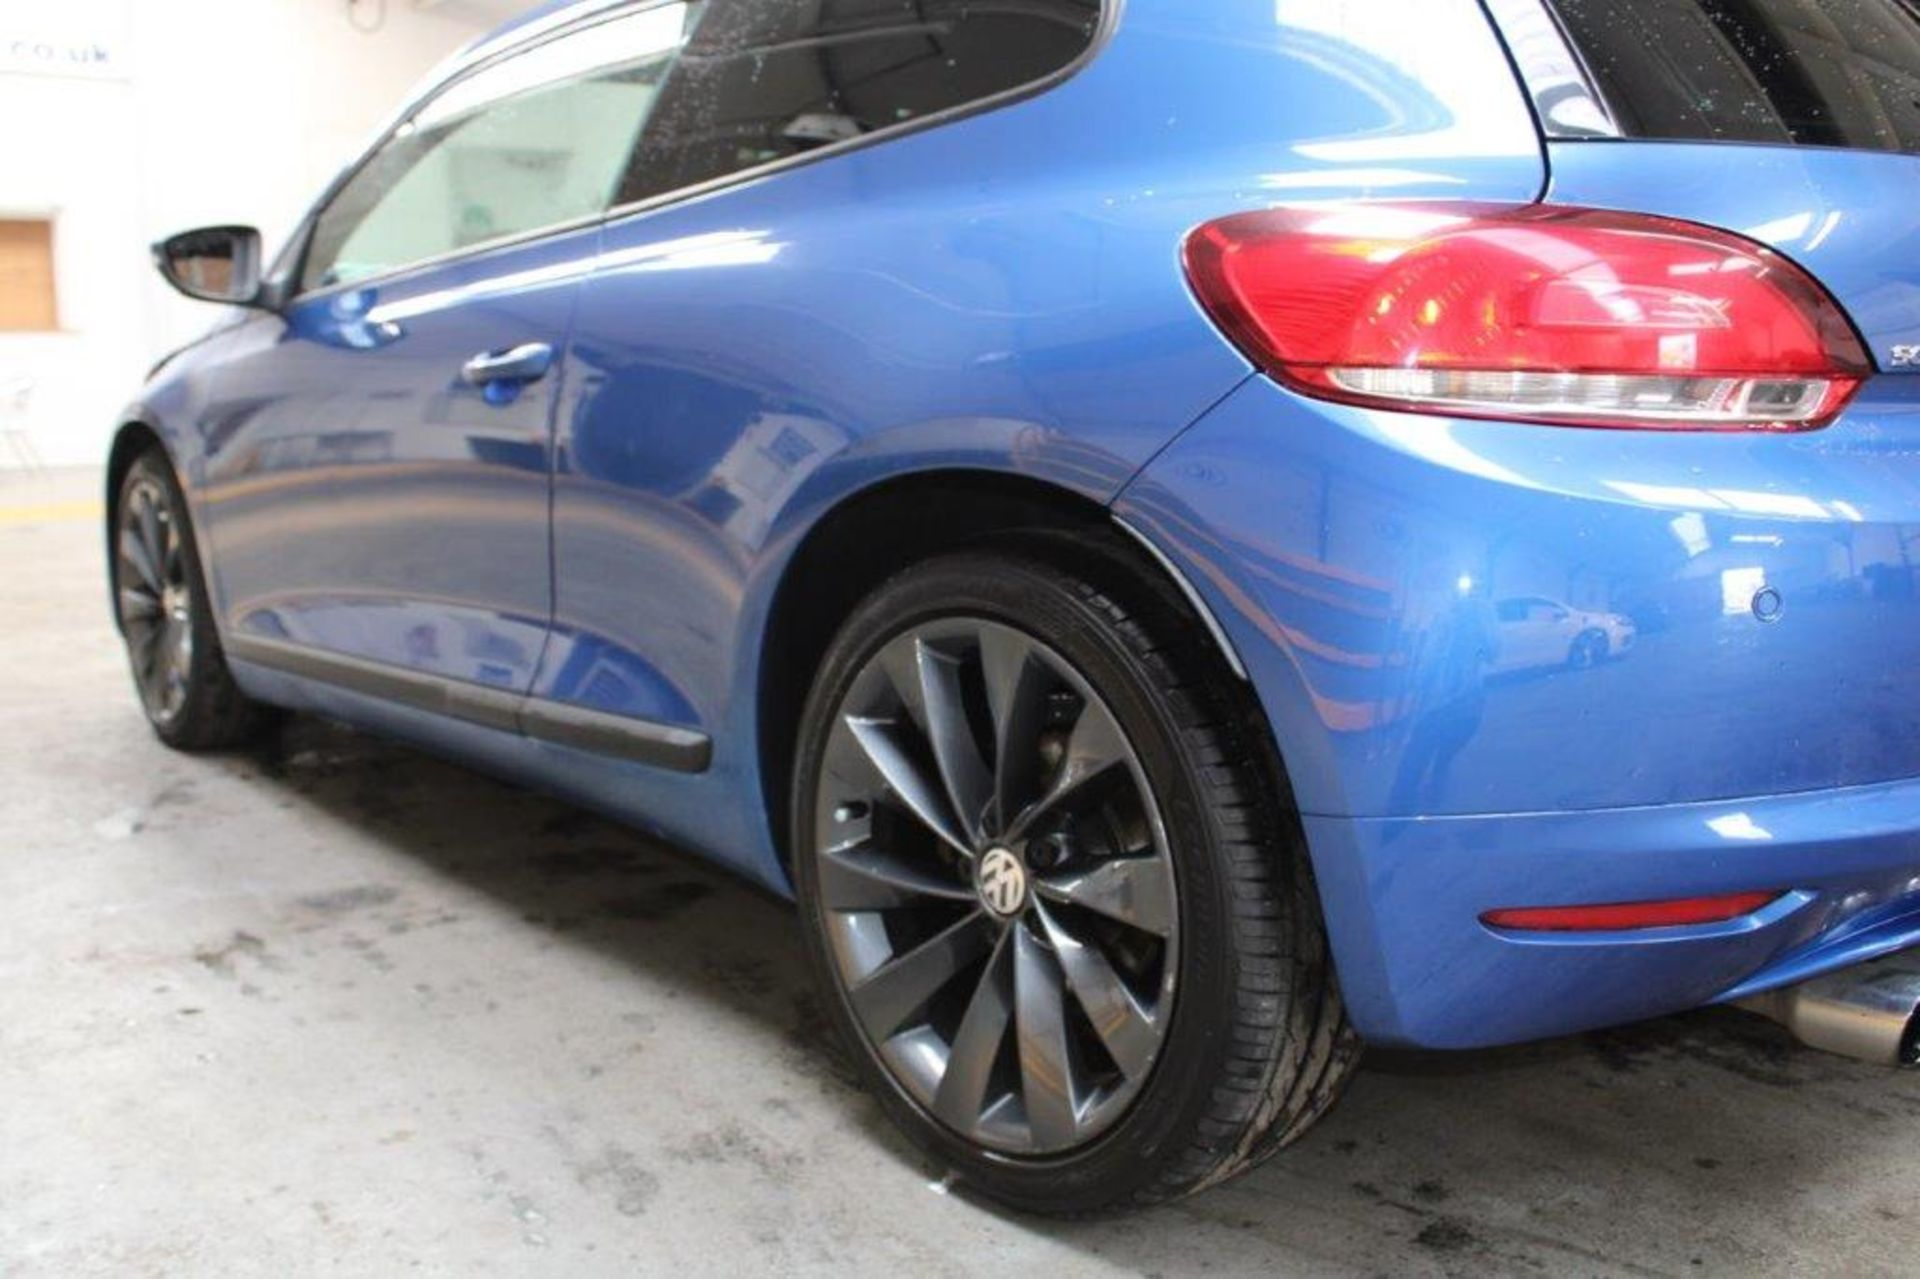 58 08 VW Scirocco GT - Image 20 of 29